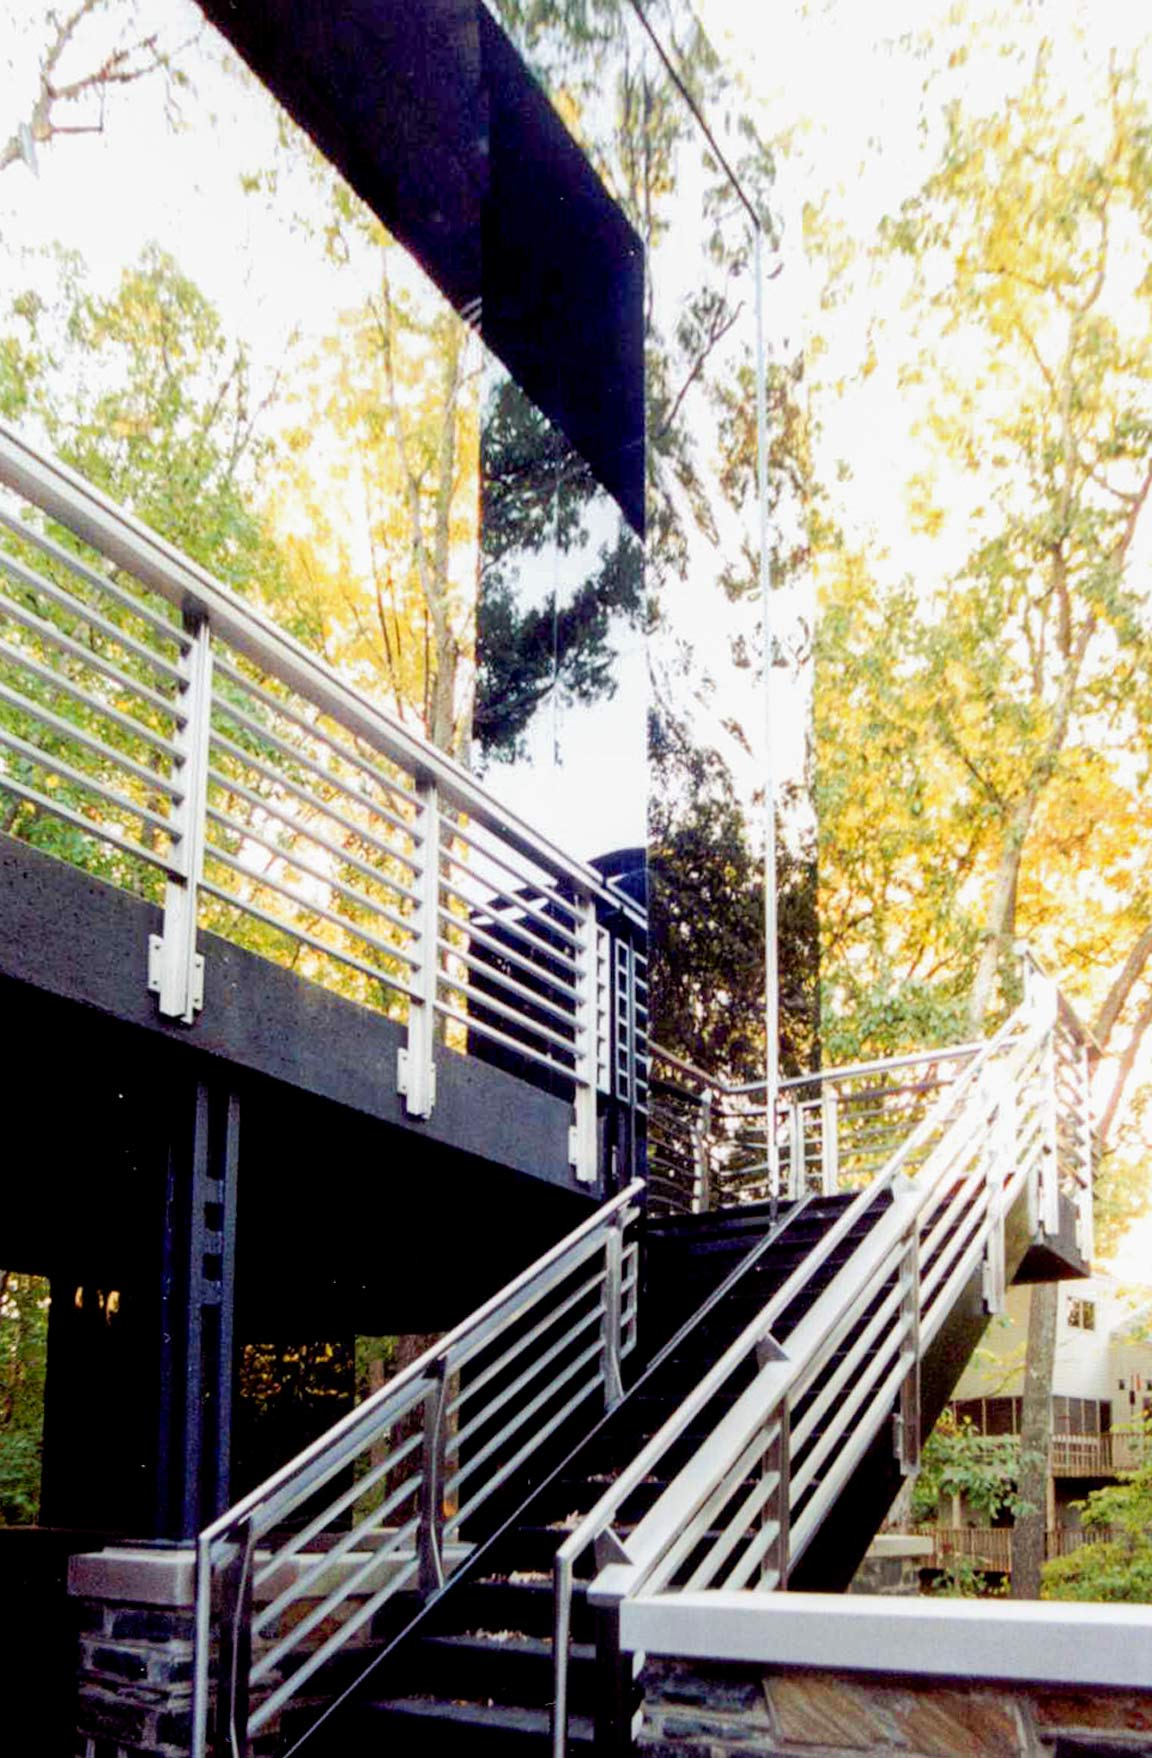 Details of the Handrails for Gaines Residence